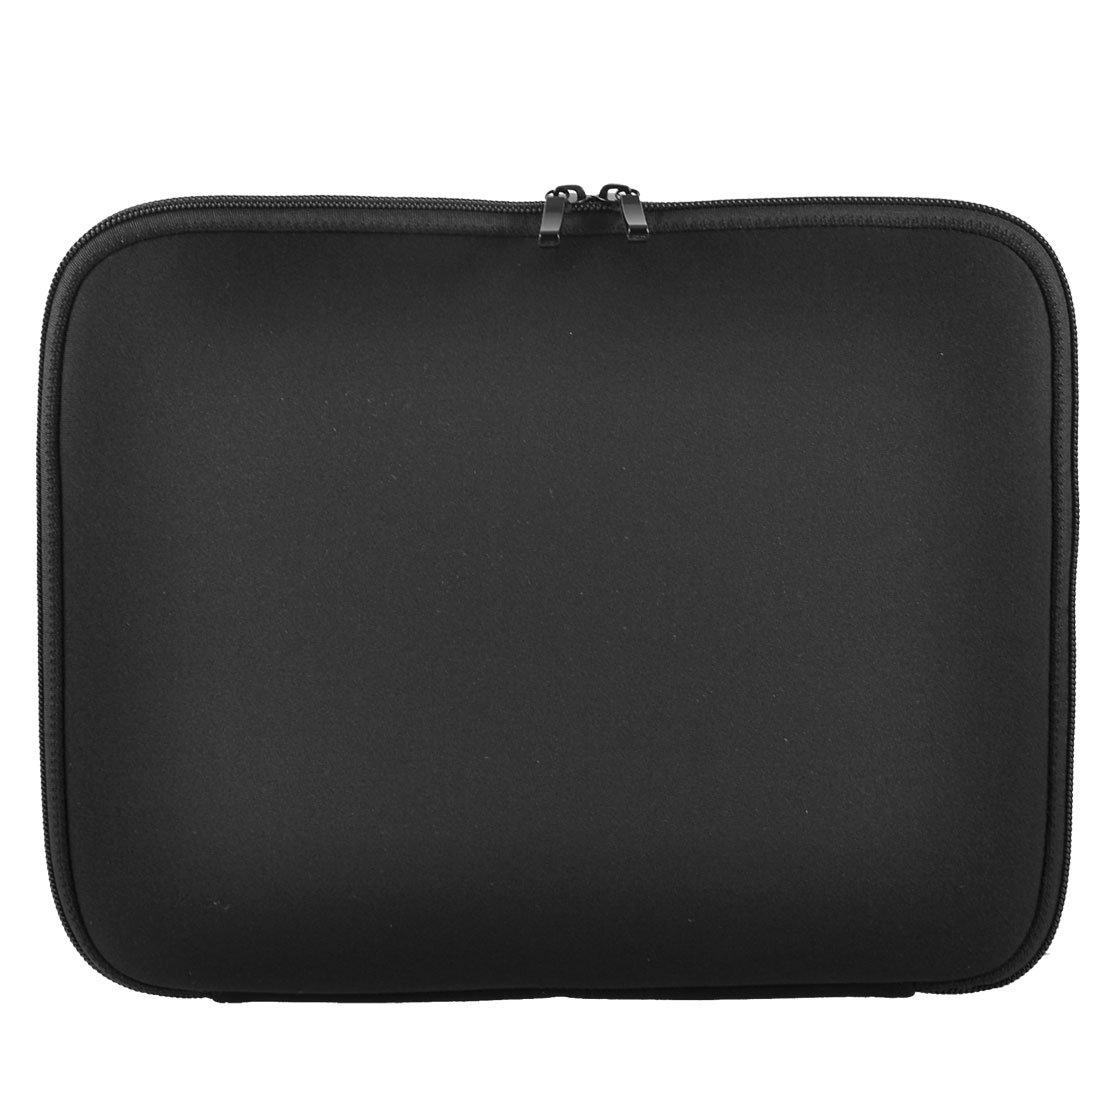 "15"" Laptop Zip Up Black Neoprene Sleeve Bag Case Pouch Cover"